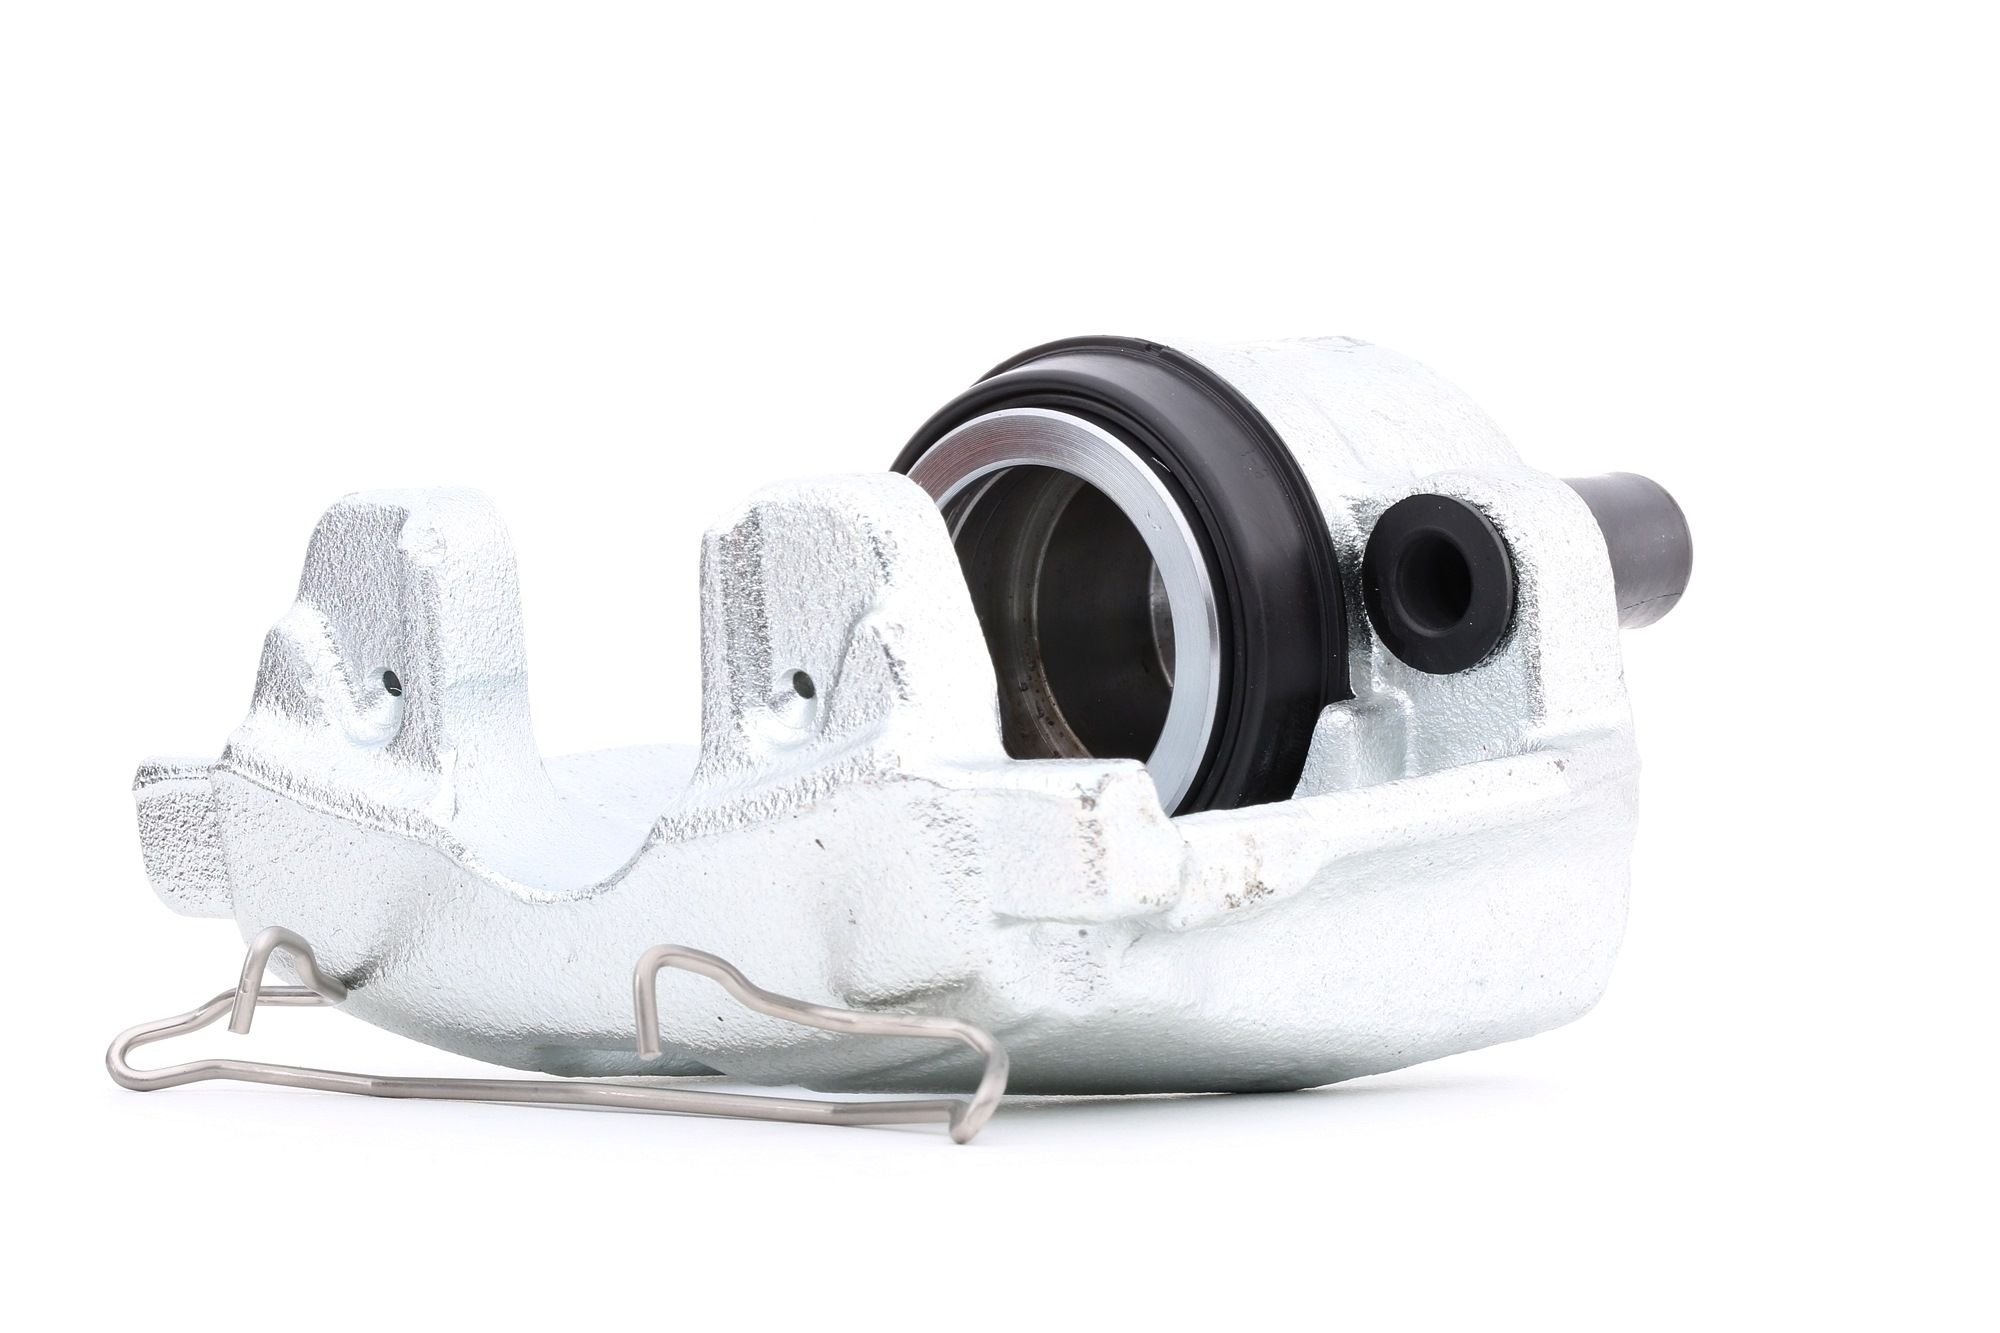 Brake calipers BHX604E TRW — only new parts